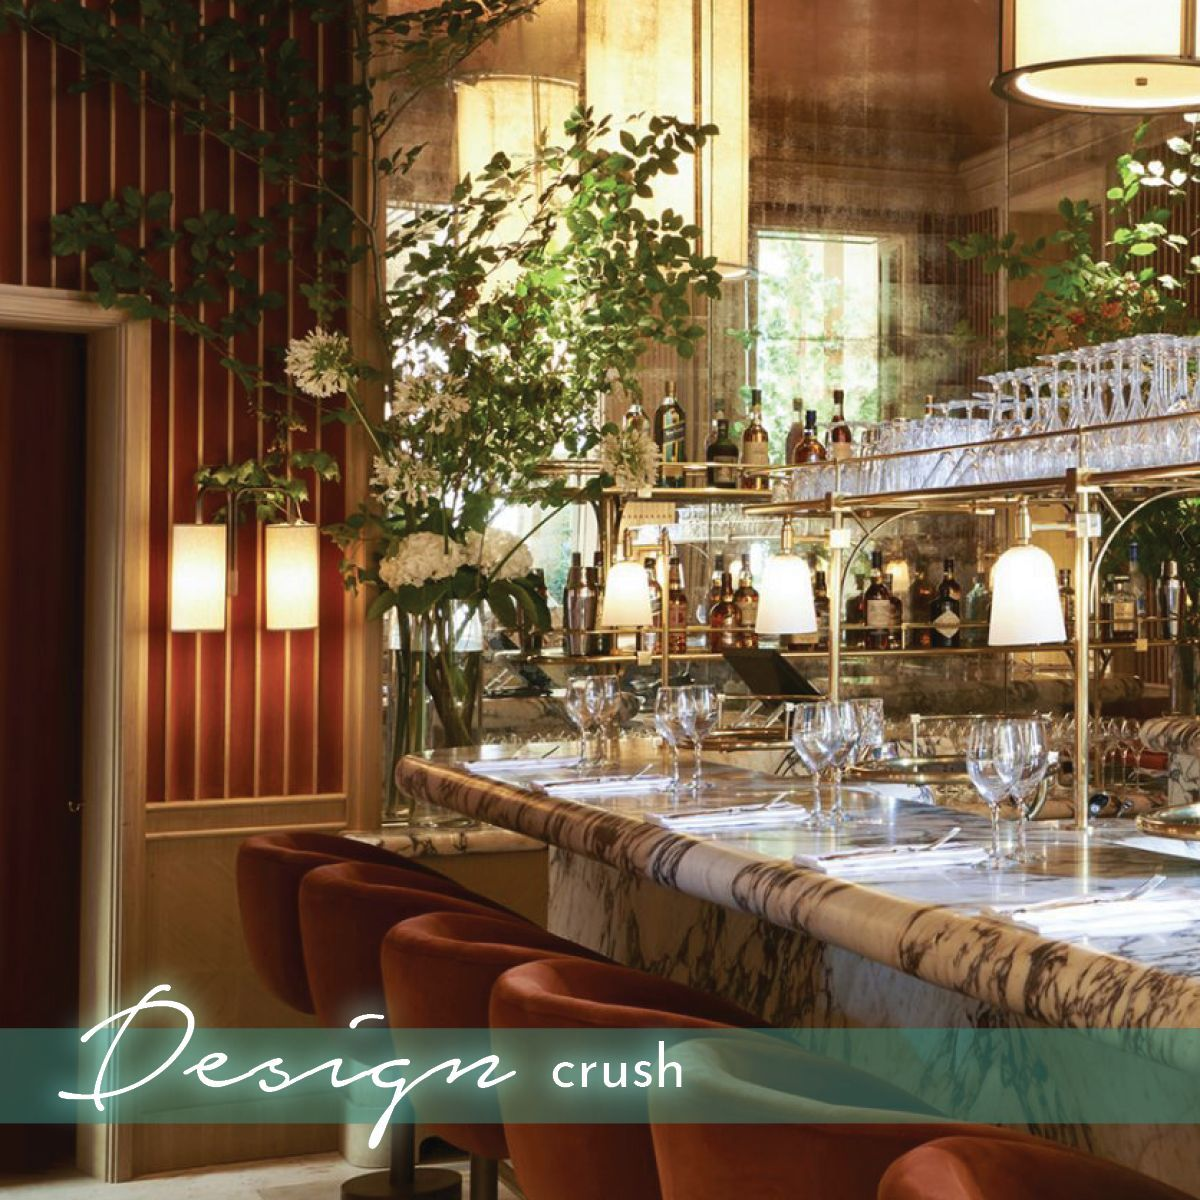 Restaurant Design Paris Design Crush Girafe Restaurant Paris Alykhan Velji Designs